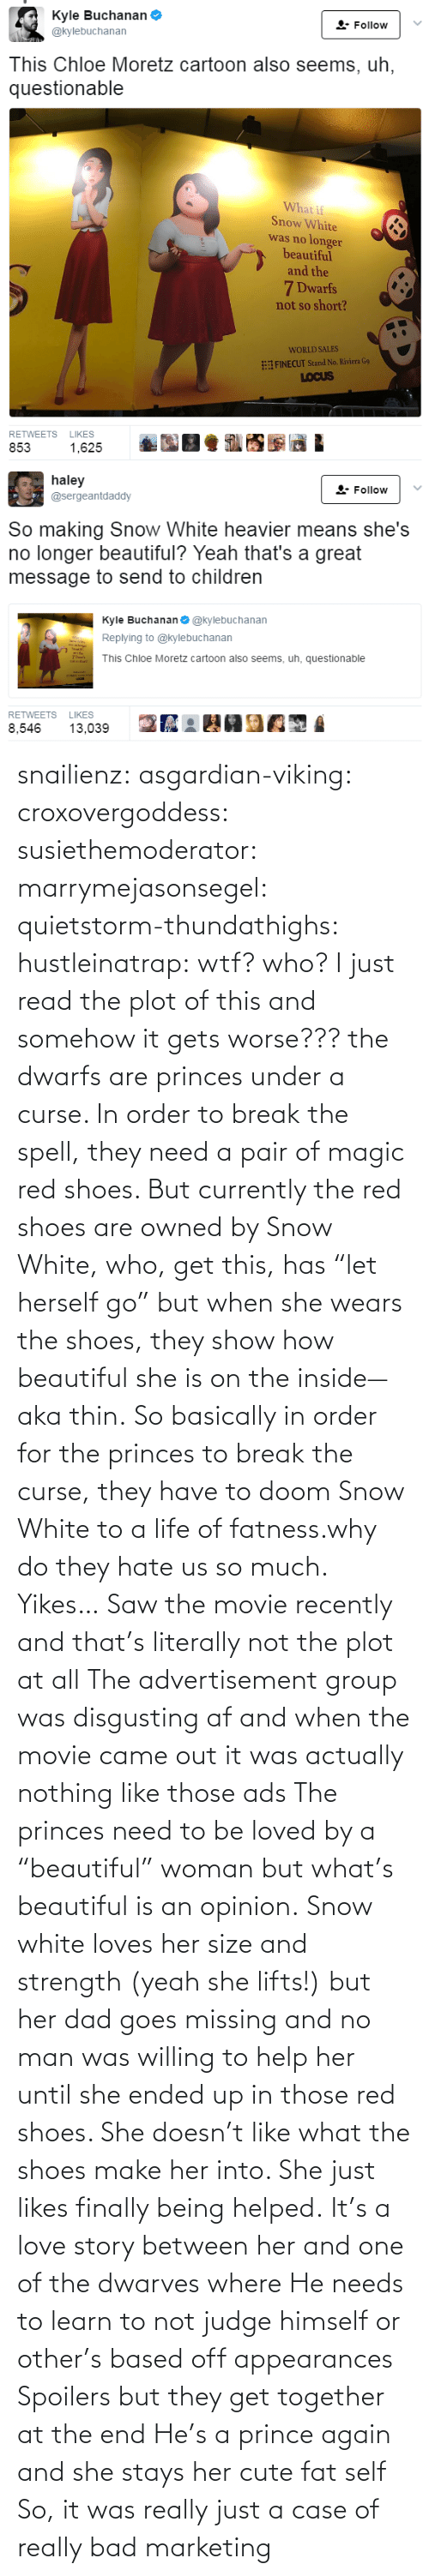 "those: snailienz: asgardian-viking:  croxovergoddess:  susiethemoderator:  marrymejasonsegel:   quietstorm-thundathighs:  hustleinatrap: wtf?  who?   I just read the plot of this and somehow it gets worse??? the dwarfs are princes under a curse. In order to break the spell, they need a pair of magic red shoes. But currently the red shoes are owned by Snow White, who, get this, has ""let herself go"" but when she wears the shoes, they show how beautiful she is on the inside—aka thin. So basically in order for the princes to break the curse, they have to doom Snow White to a life of fatness.why do they hate us so much.   Yikes…    Saw the movie recently and that's literally not the plot at all The advertisement group was disgusting af and when the movie came out it was actually nothing like those ads The princes need to be loved by a ""beautiful"" woman but what's beautiful is an opinion. Snow white loves her size and strength (yeah she lifts!) but her dad goes missing and no man was willing to help her until she ended up in those red shoes. She doesn't like what the shoes make her into. She just likes finally being helped. It's a love story between her and one of the dwarves where He needs to learn to not judge himself or other's based off appearances  Spoilers but they get together at the end He's a prince again and she stays her cute fat self  So, it was really just a case of really bad marketing"